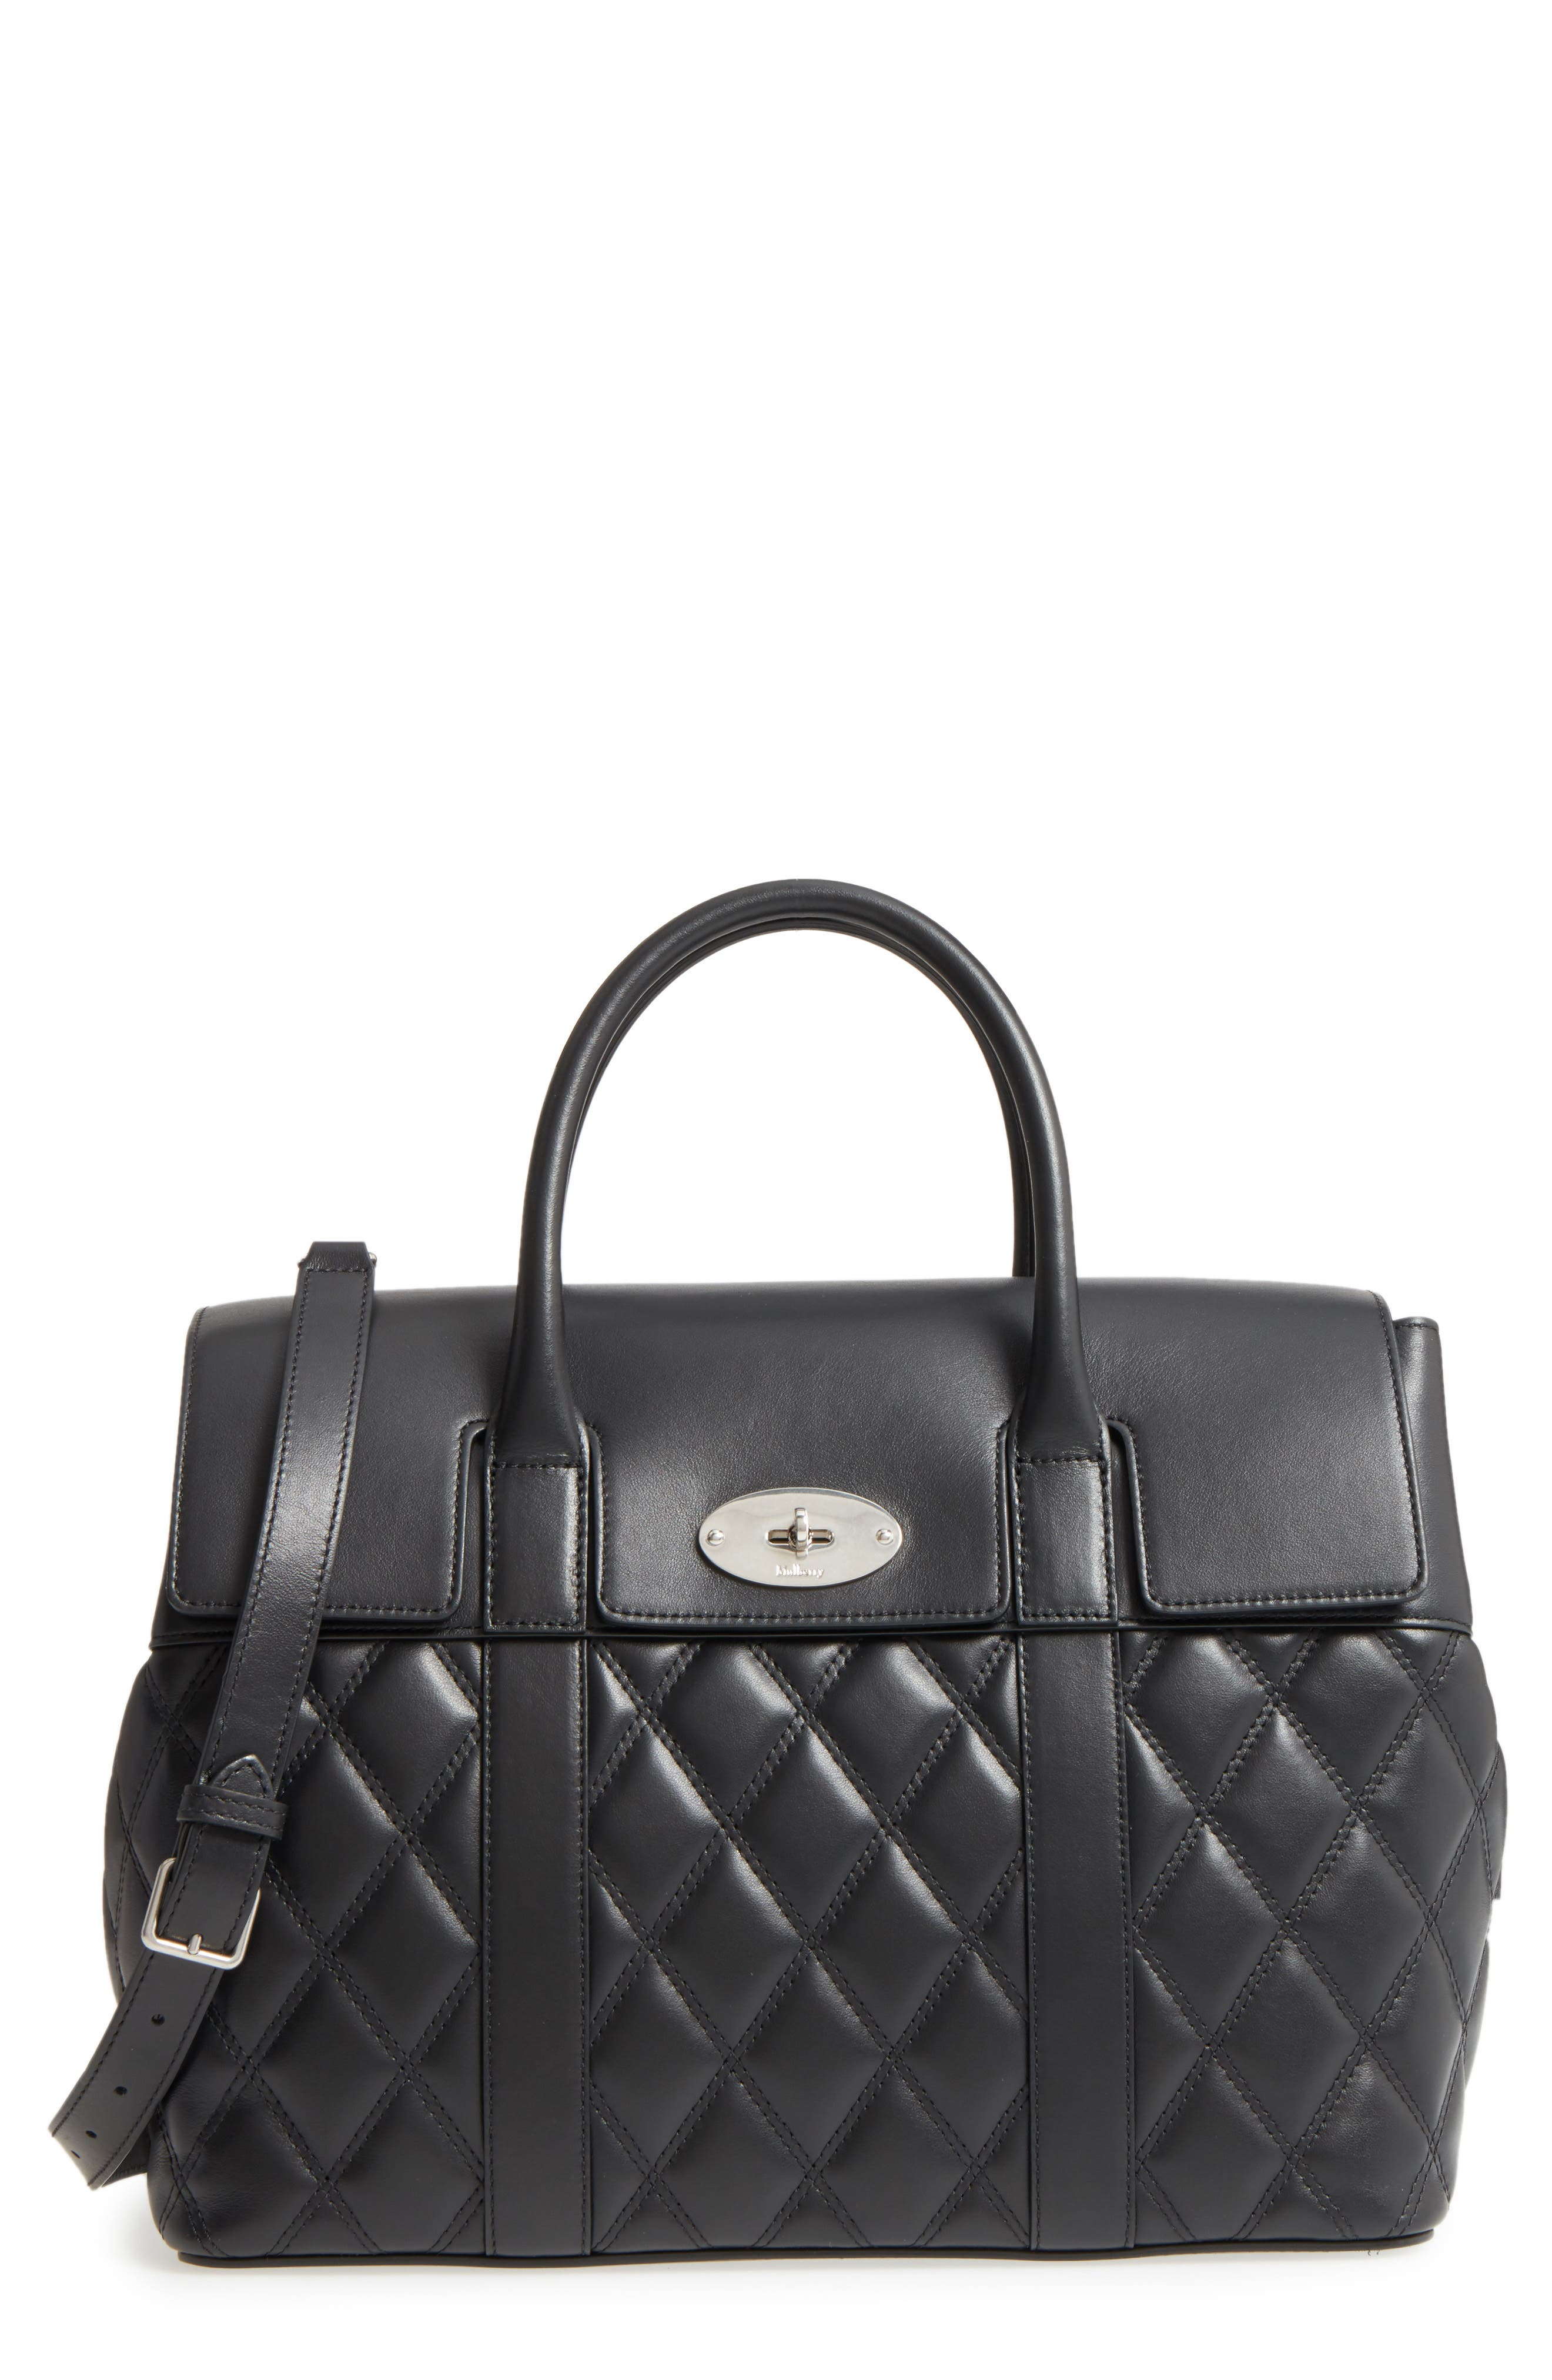 Bayswater Quilted Calfskin Leather Satchel,                             Main thumbnail 1, color,                             010